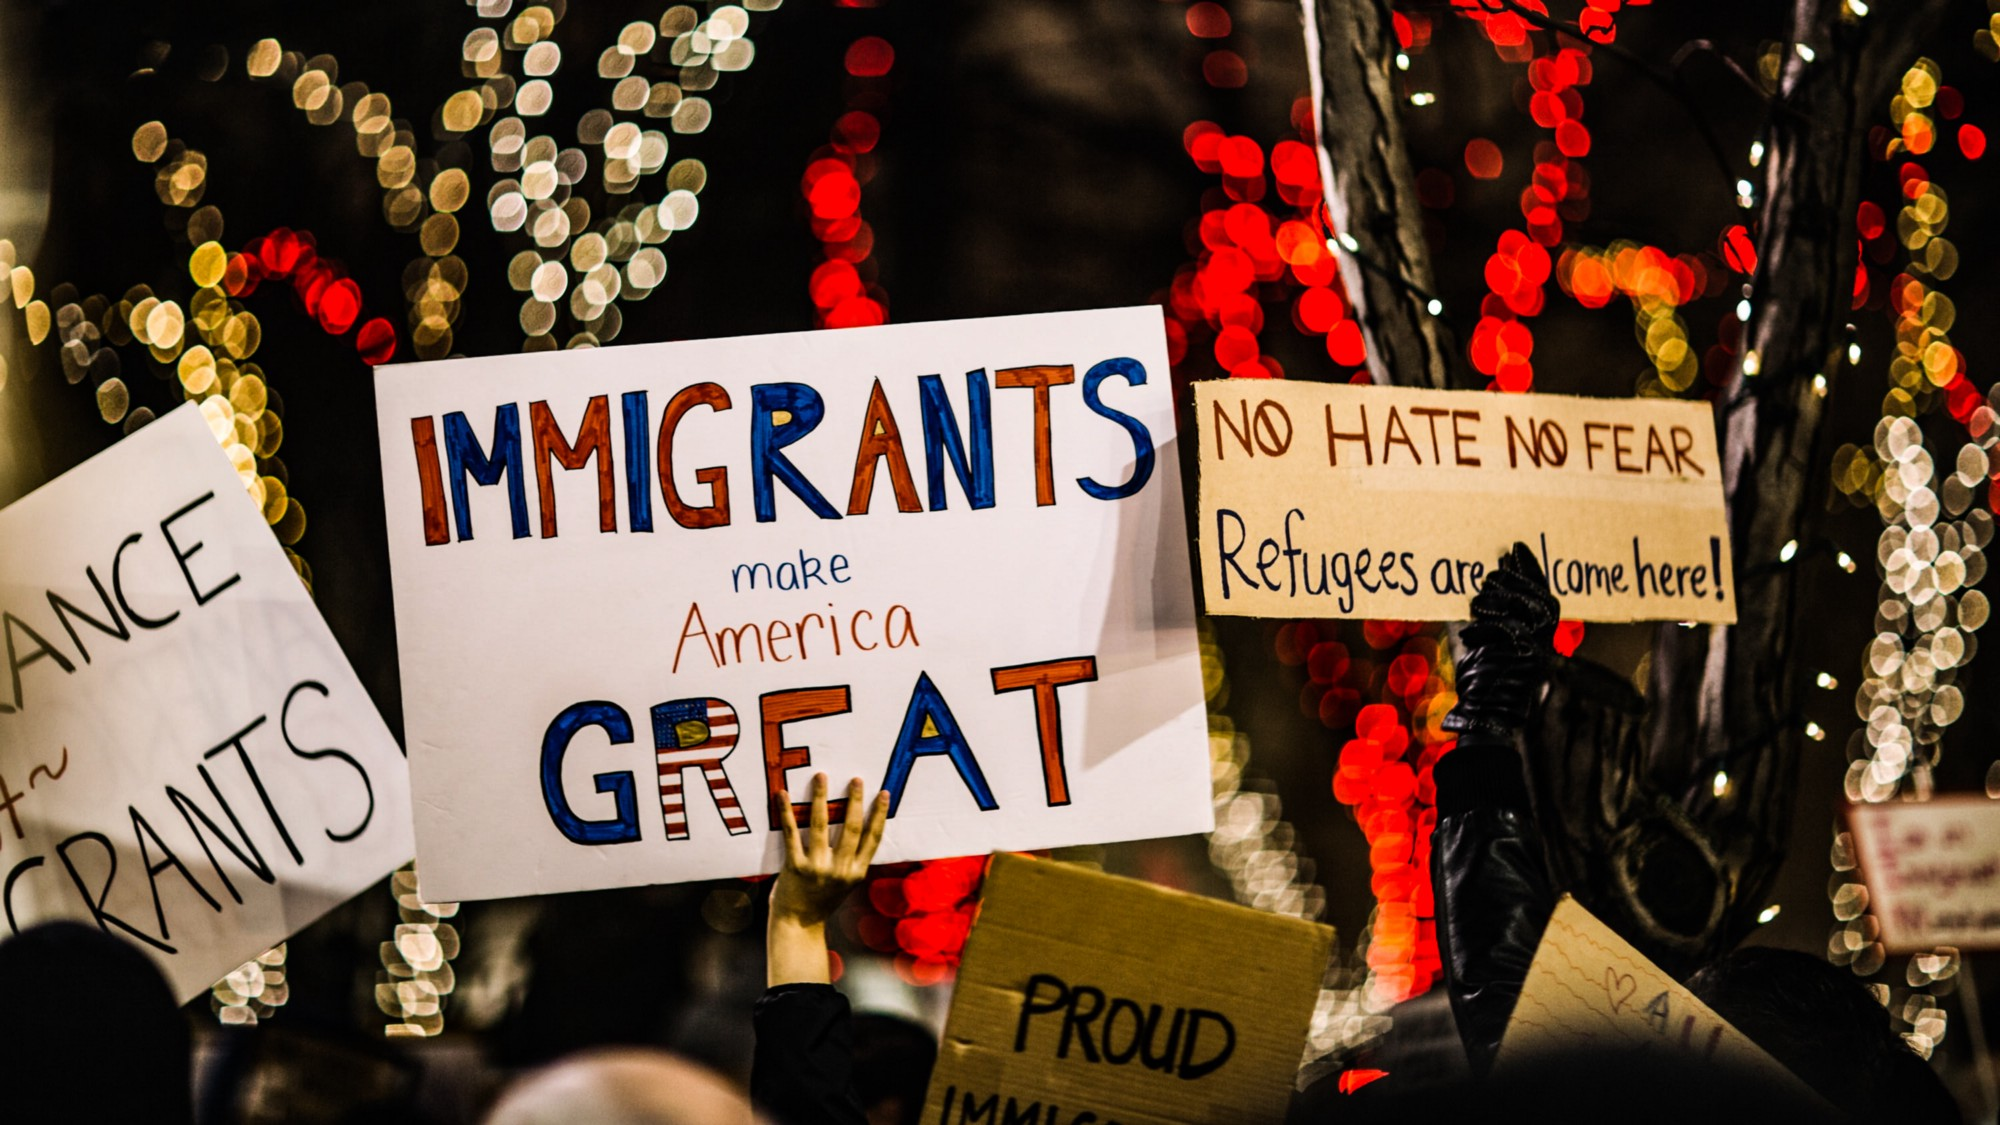 Cover photo: Immigrant Make America Great — Photo by Nitisha Meena, Unsplash